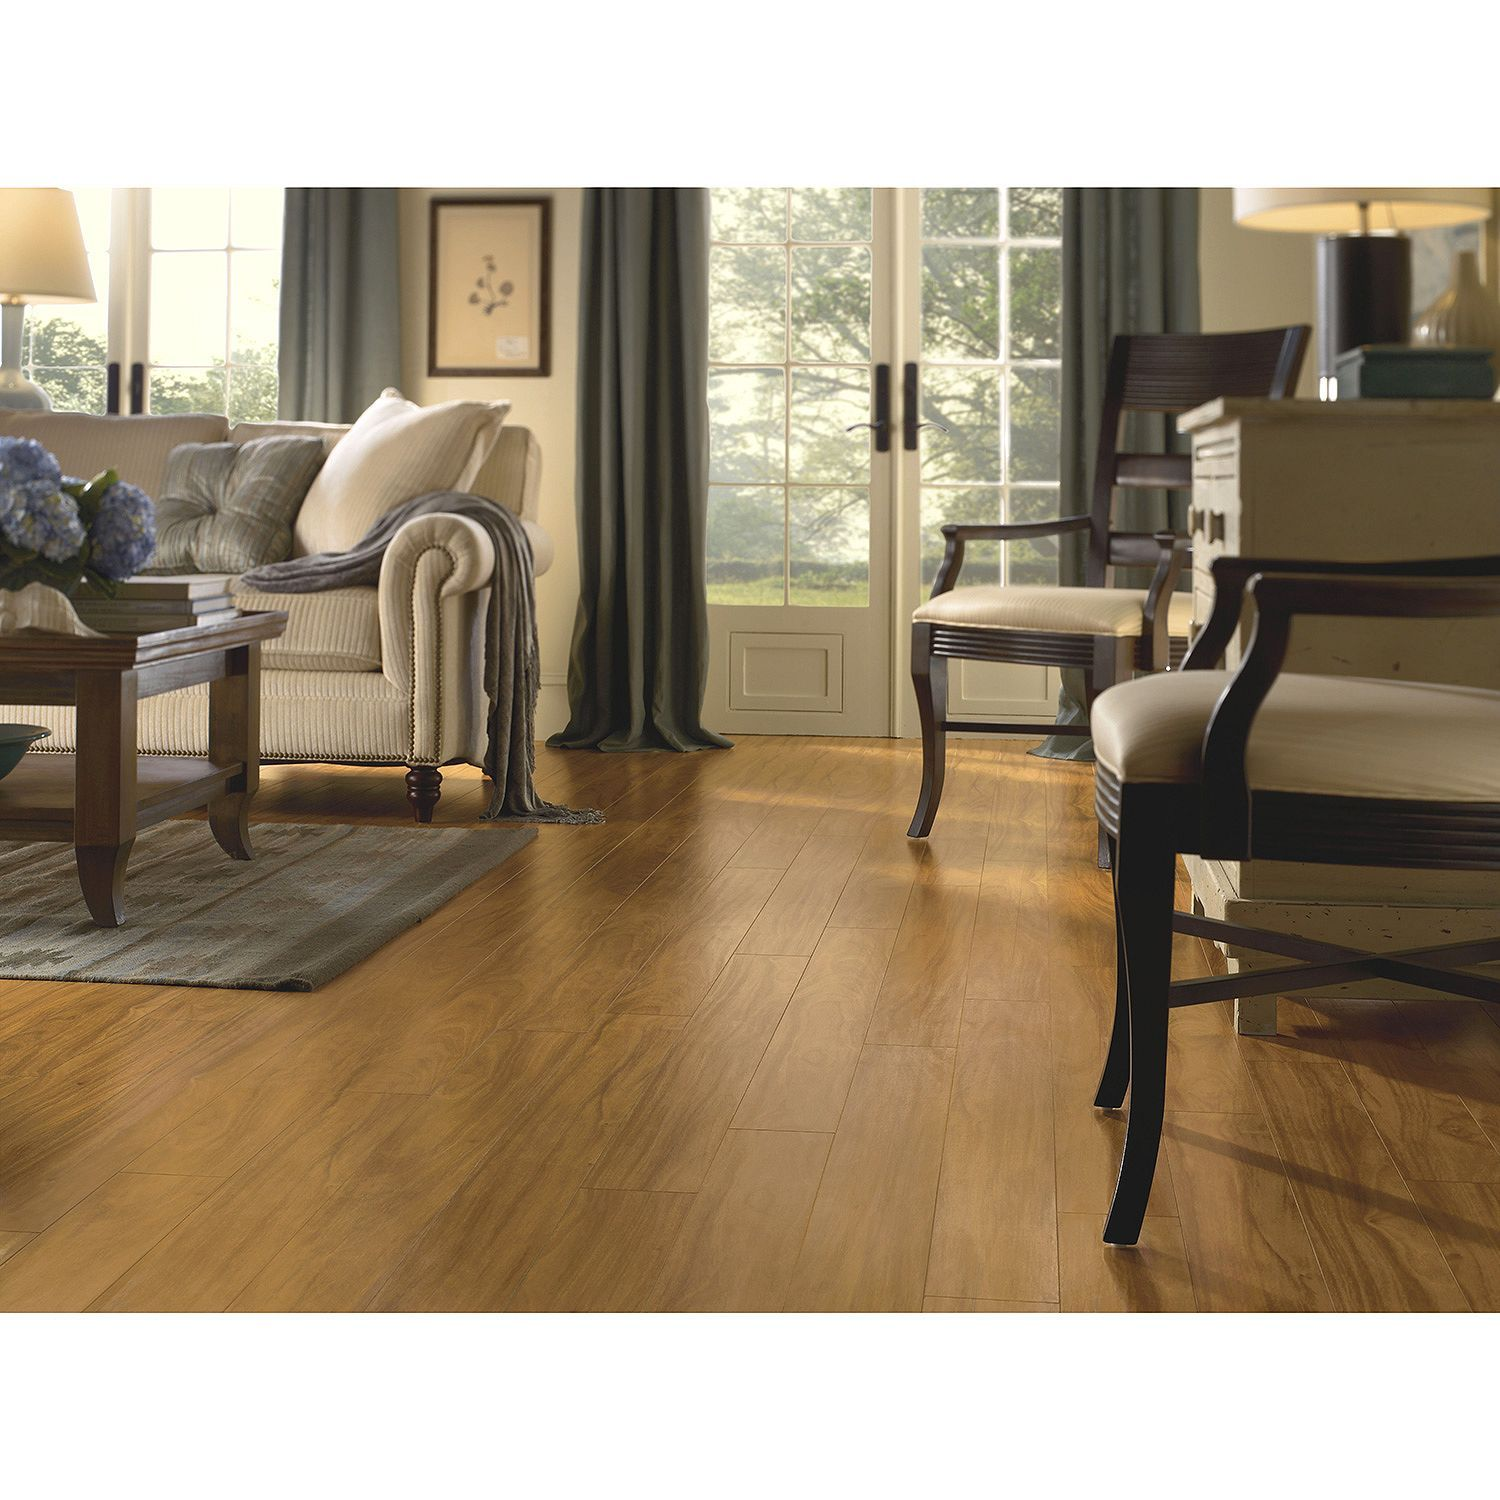 Premier By Armstrong 12mm Afzelia Laminate Flooring With Images Hardwood Design Types Of Wood Flooring Laminate Flooring